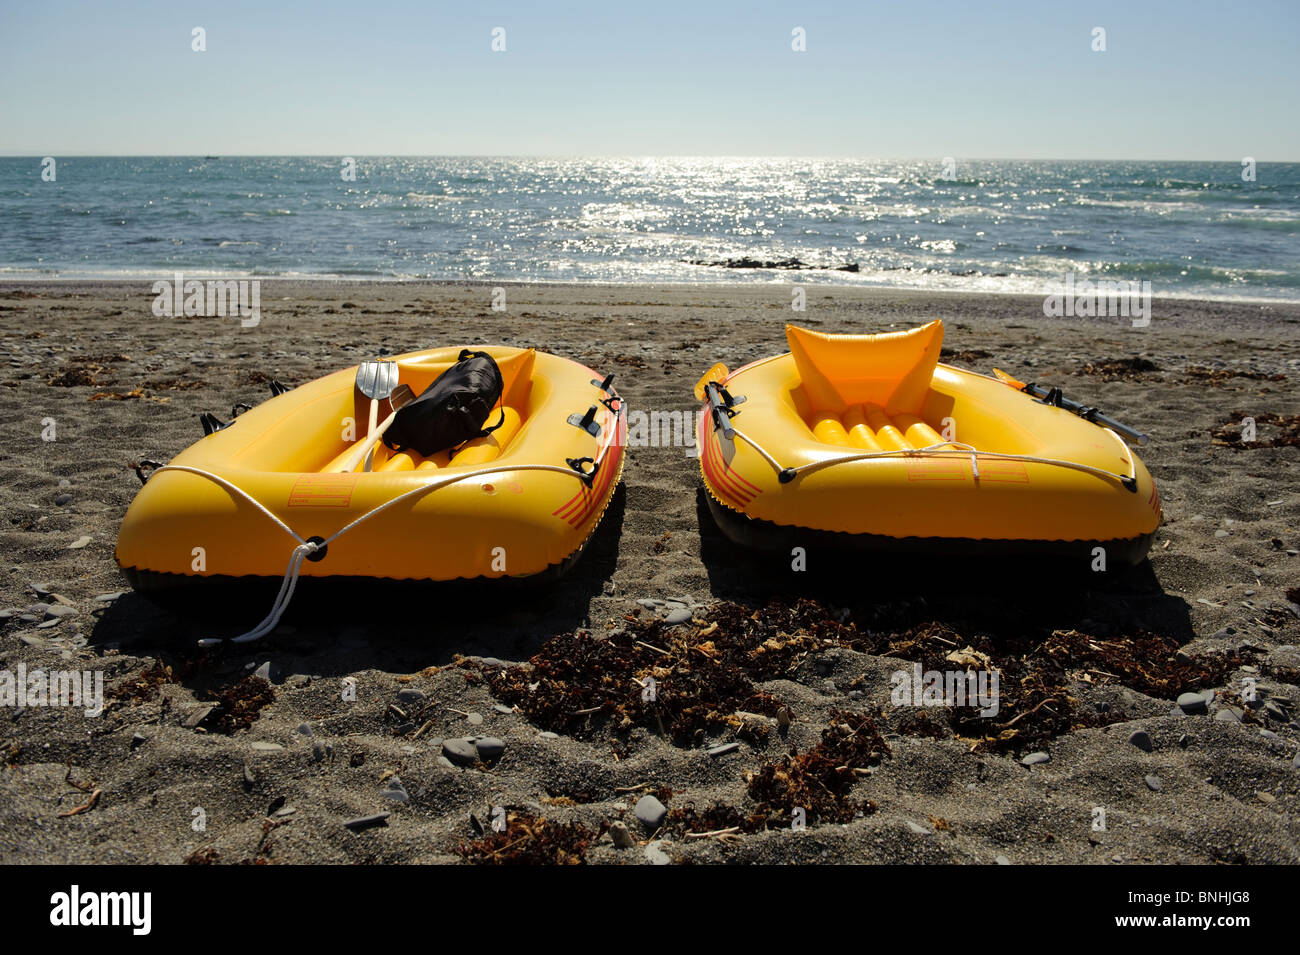 Two yellow inflatable dinghies on a beach, summer afternoon, aberystwyth wales UK - Stock Image